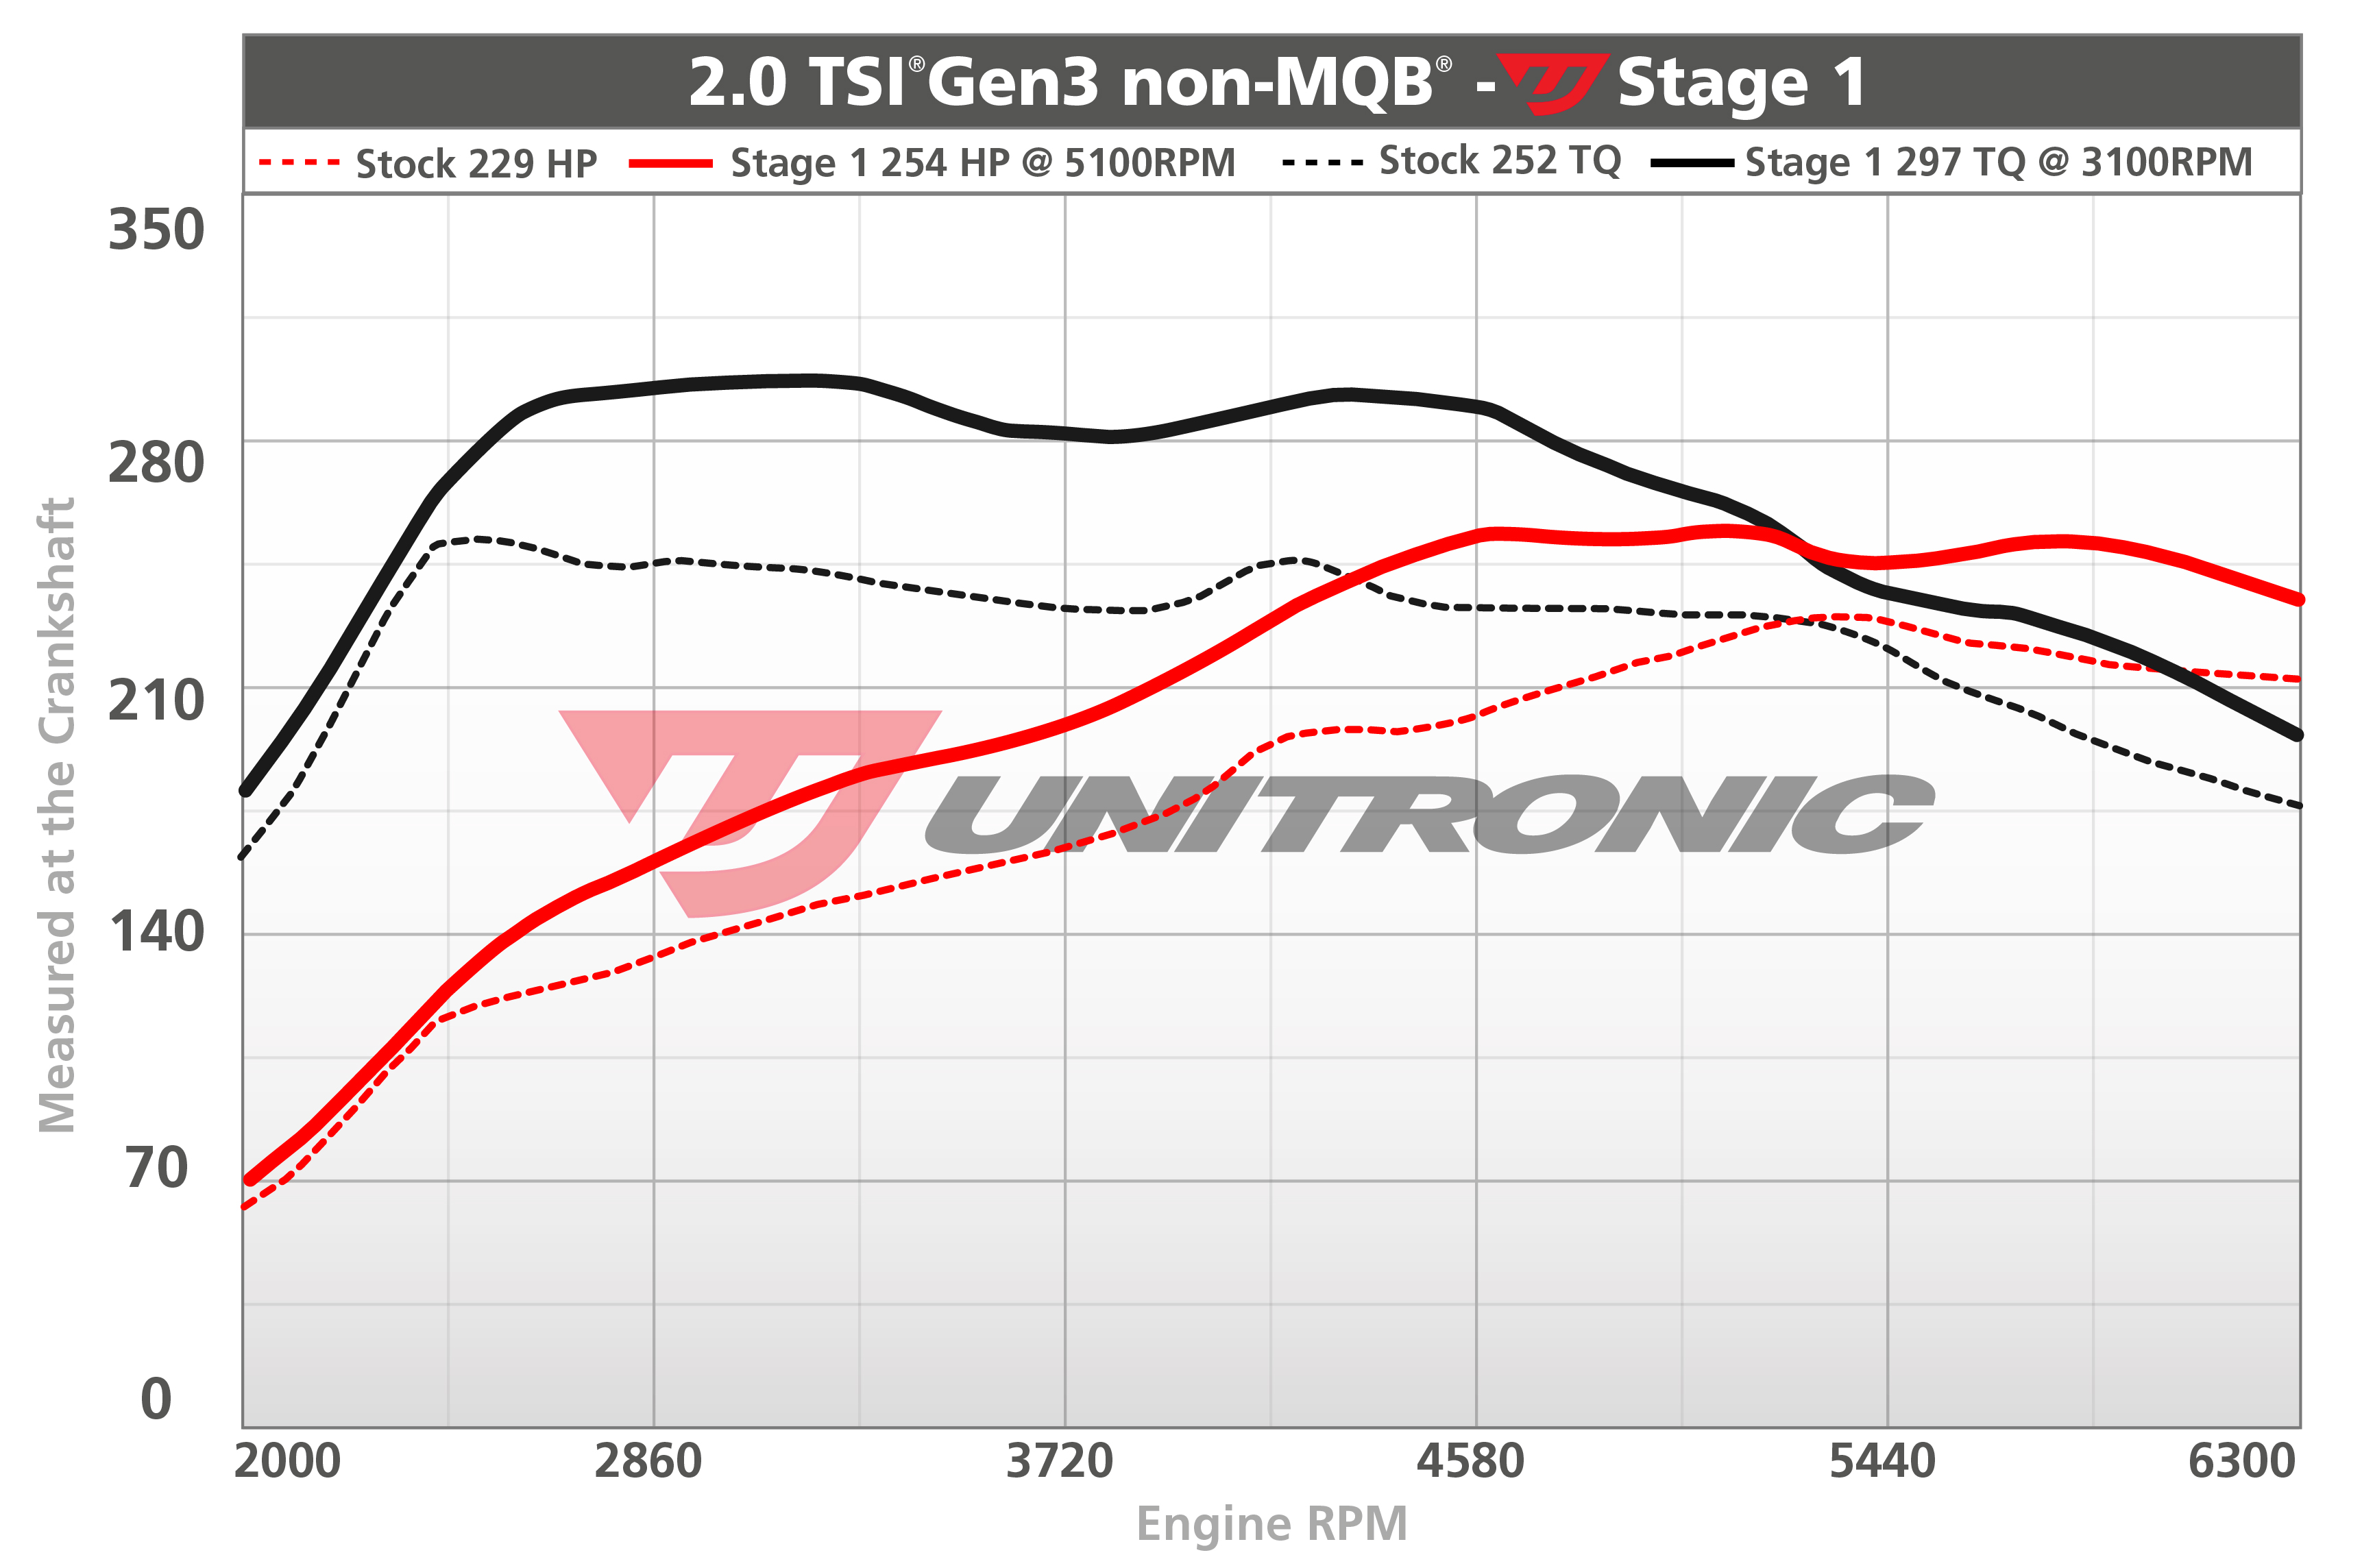 Unitronic Vw Mk6 Jetta Gli 20t Gen3 Performance Audi 2 0t Engine Diagram Local Customers Contact Us For Details On Having Your Car Tuned At Our Store Call Or Text 813 444 7021